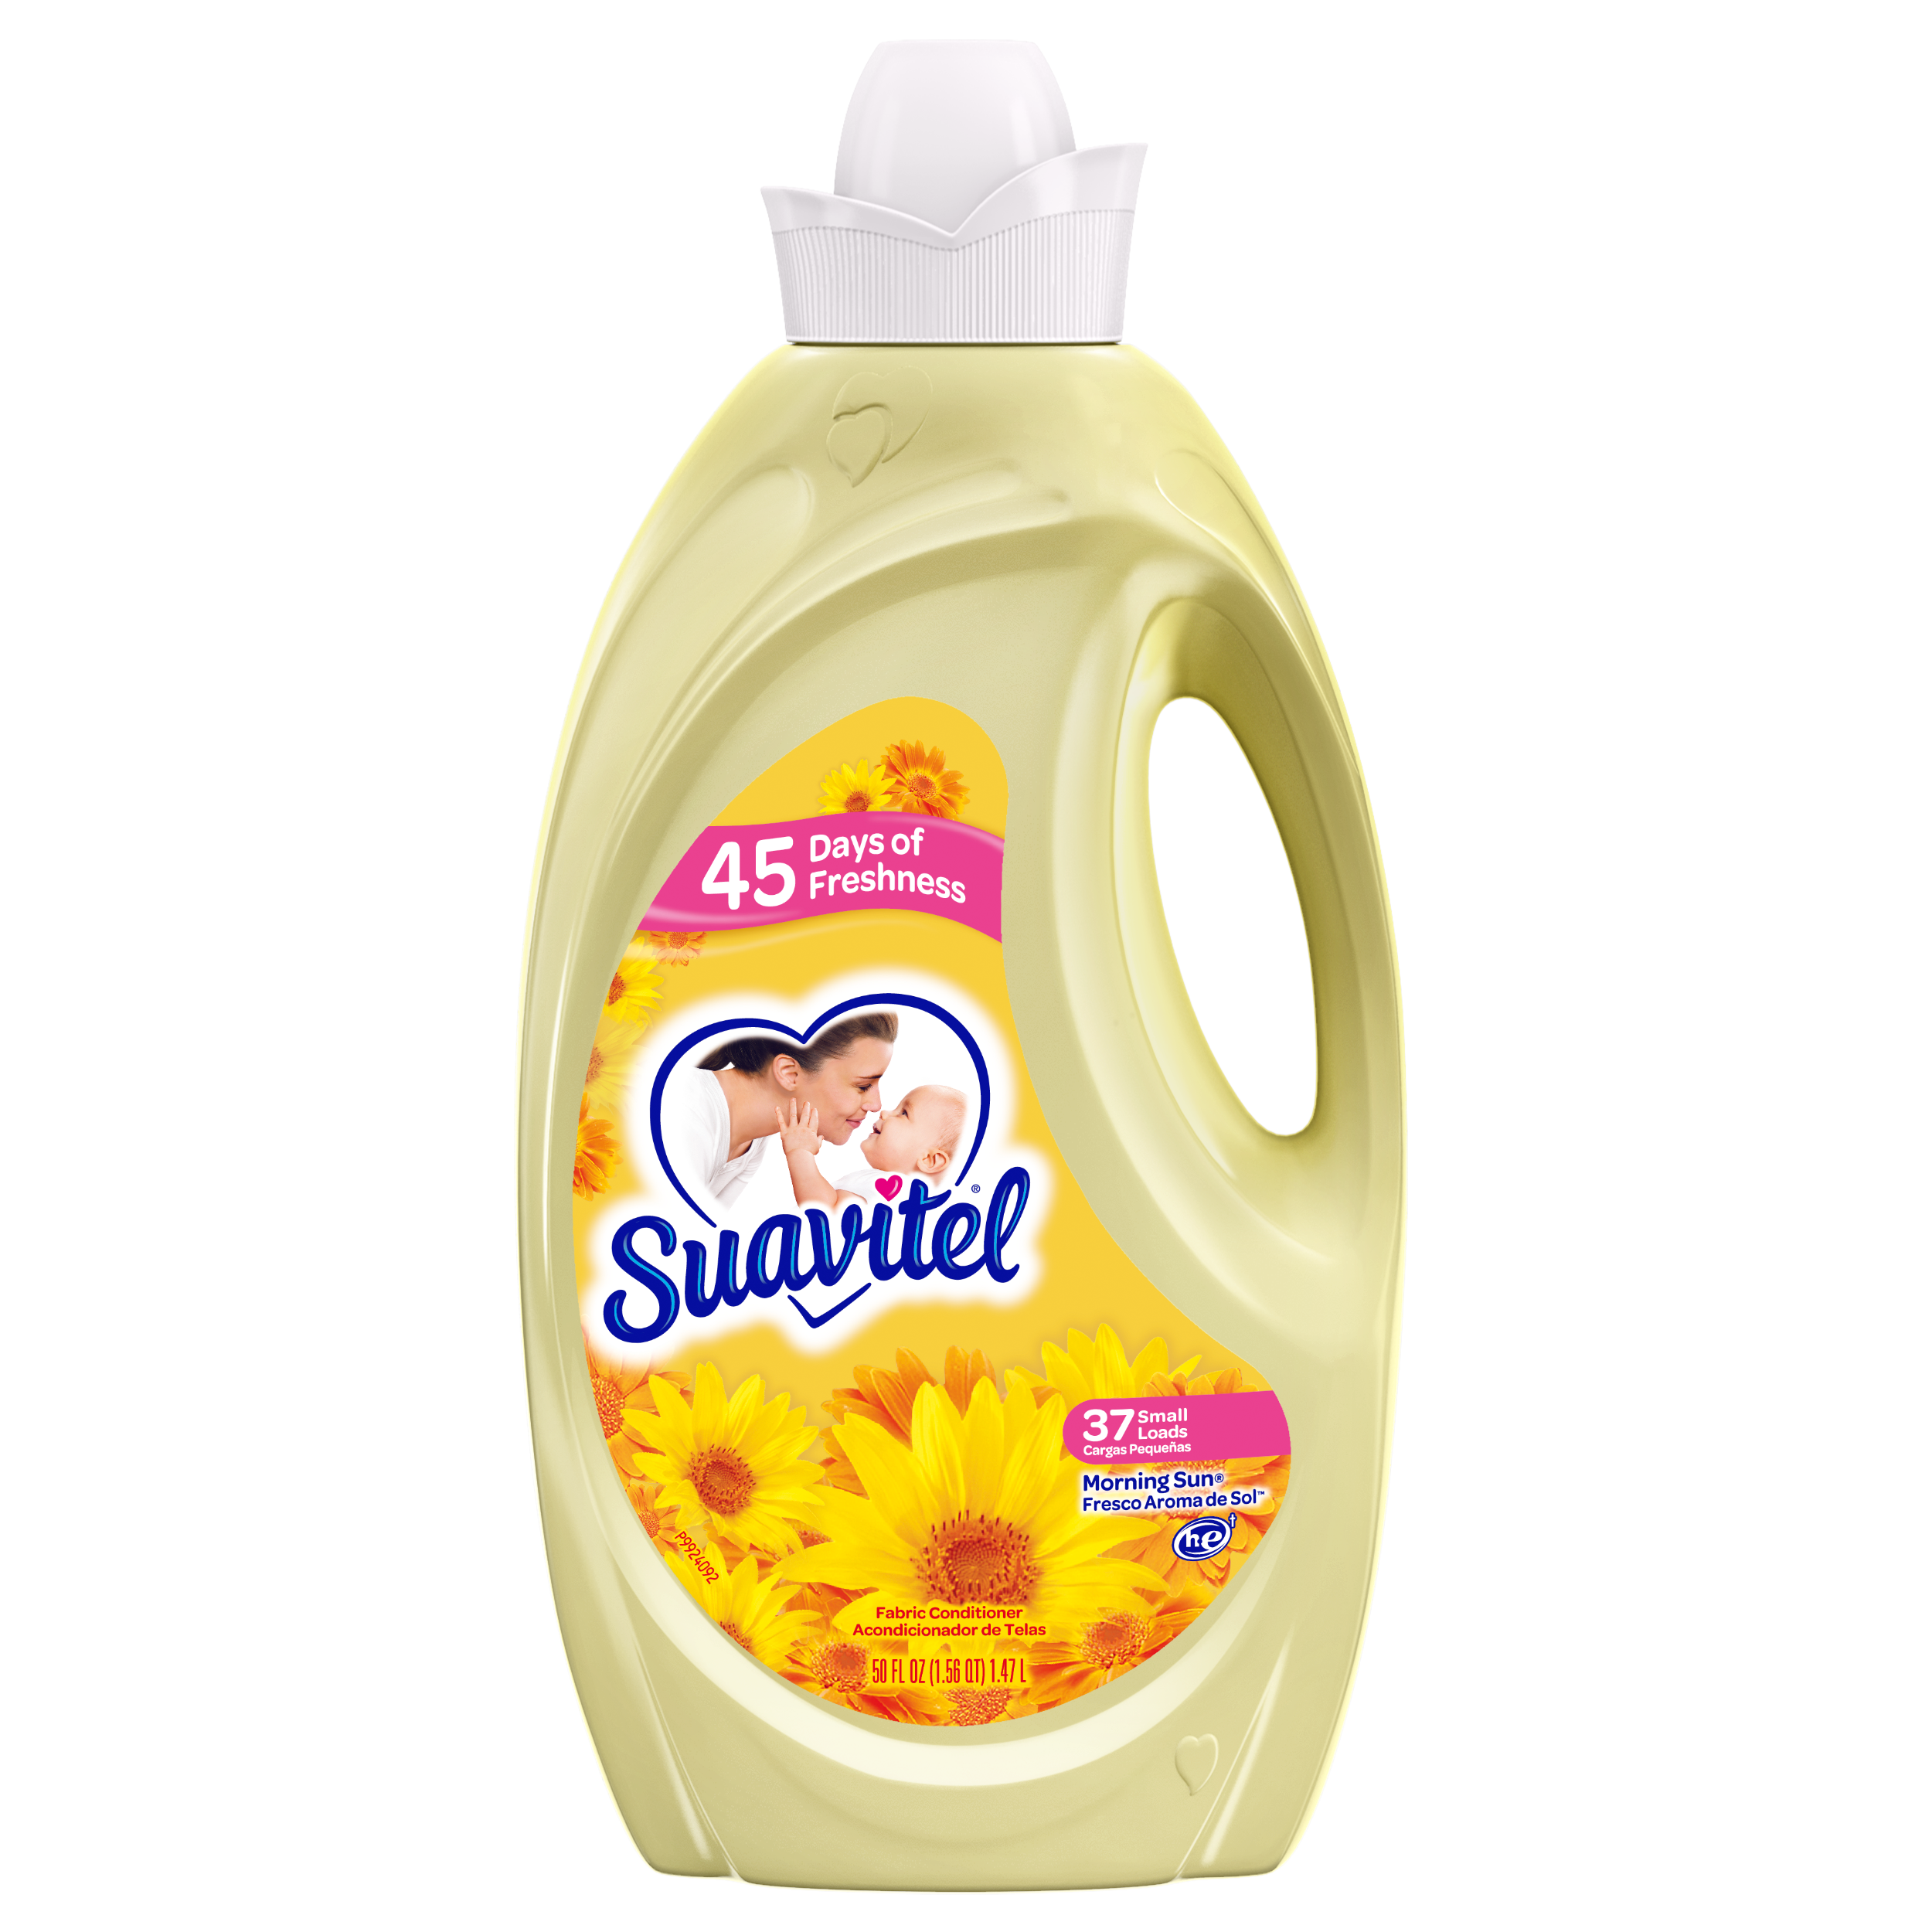 Suavitel Morning Sun Fabric Conditioner, 34 small loads, 50 fl oz